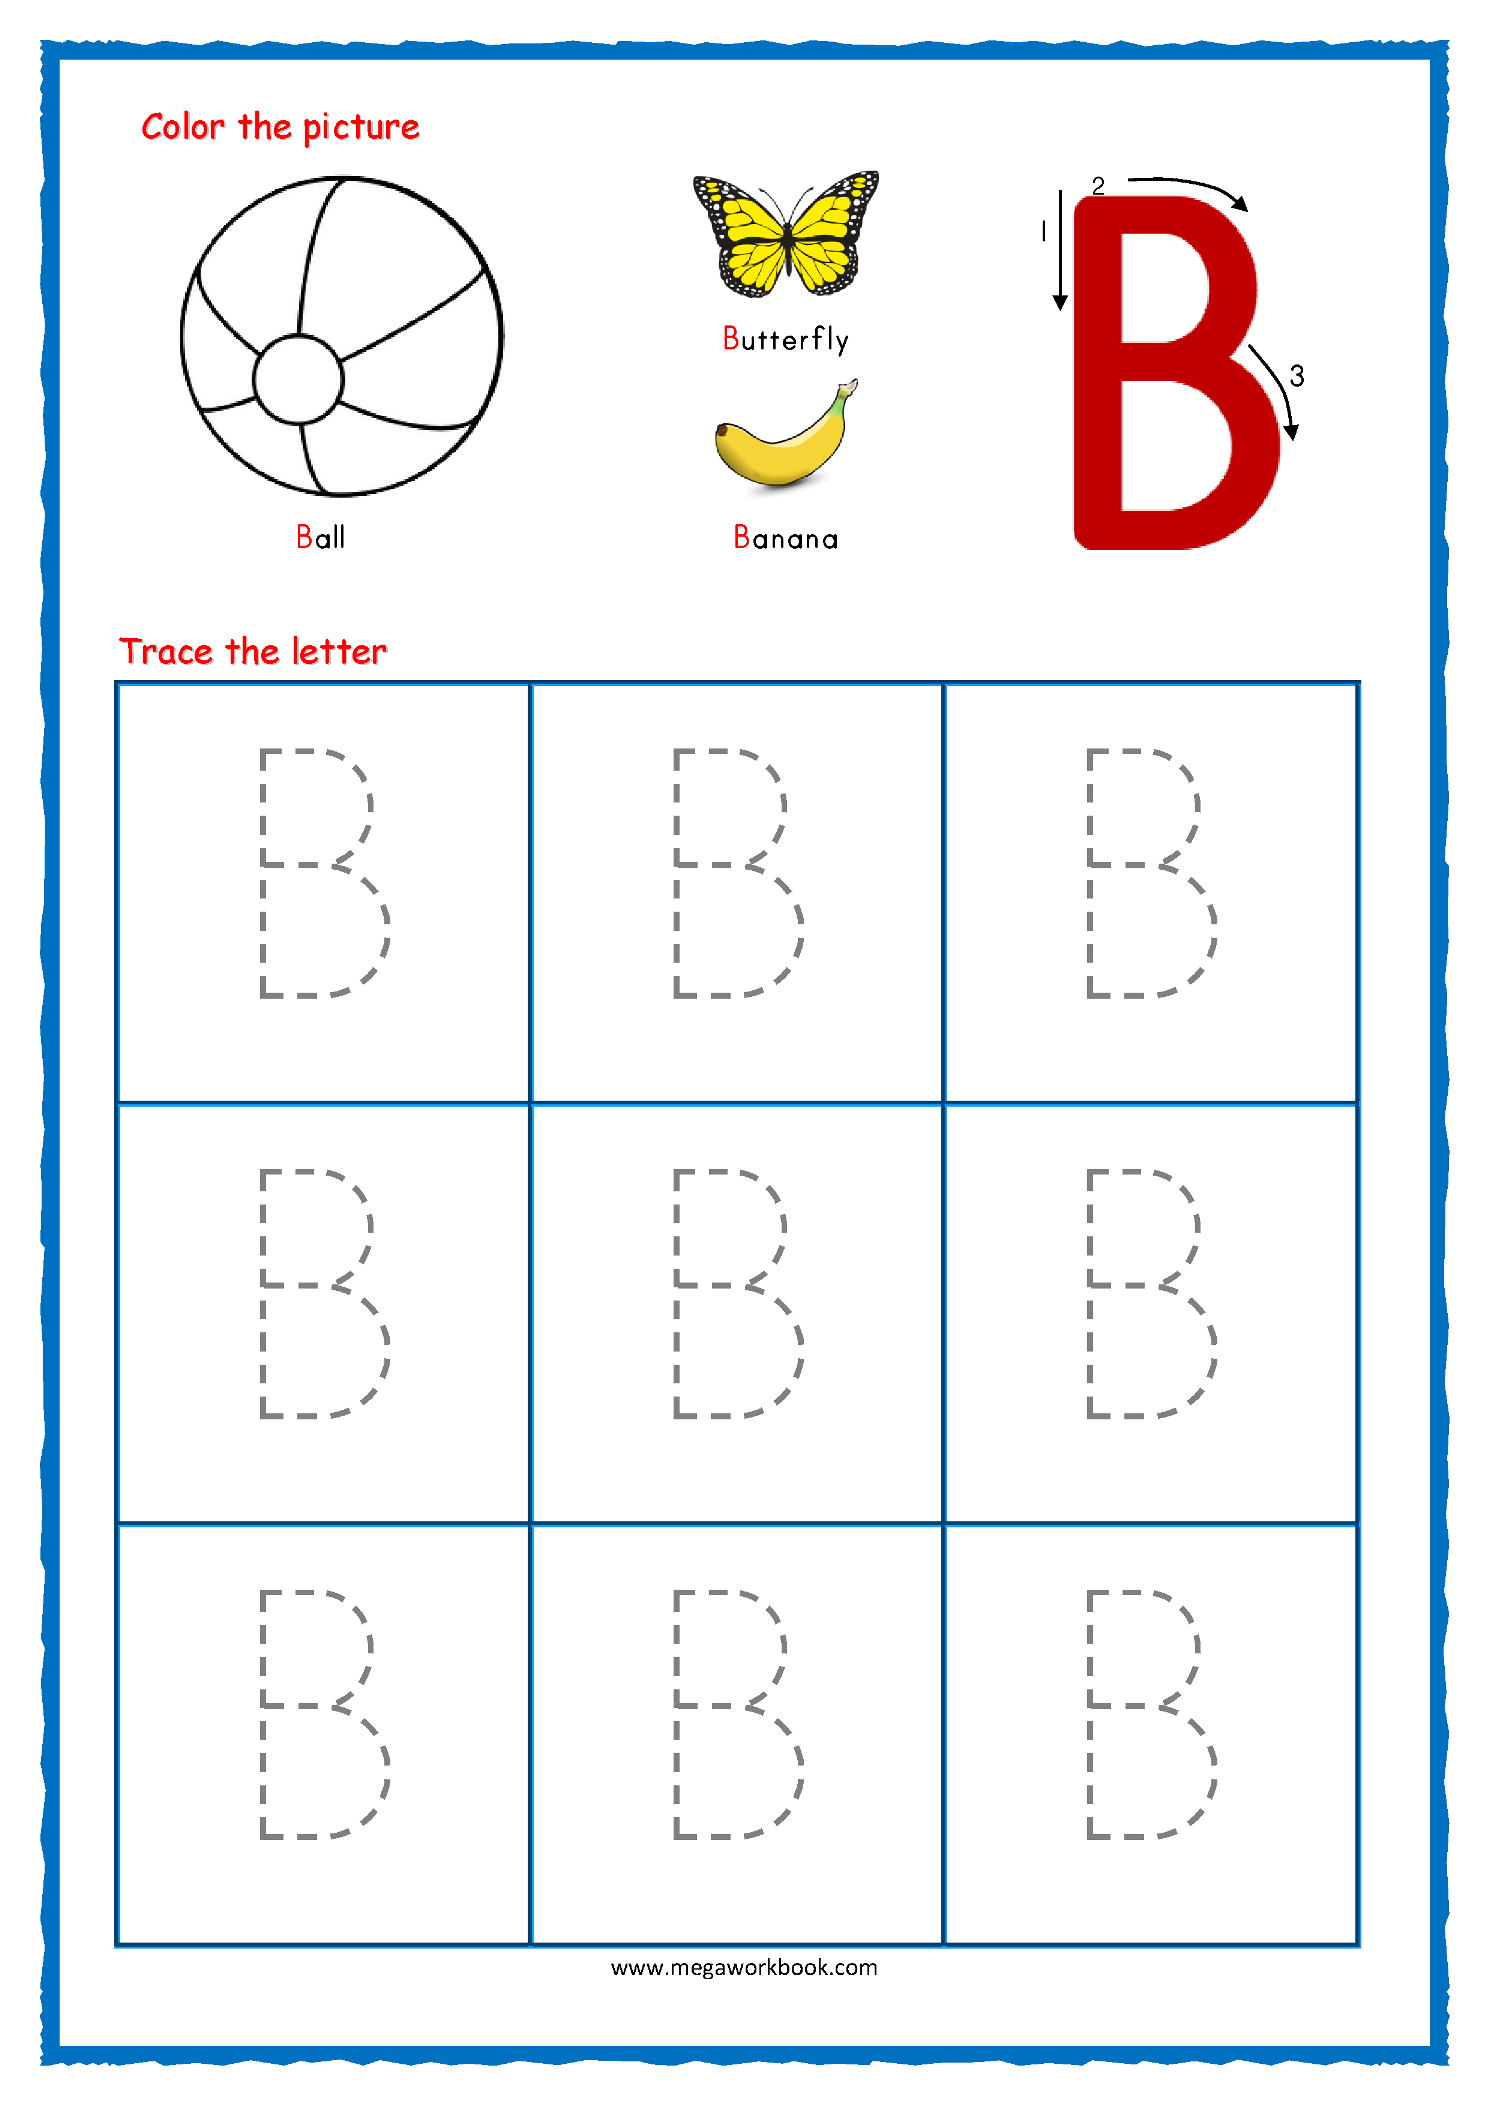 Tracing Letters - Alphabet Tracing - Capital Letters pertaining to Alphabet Tracing Printables Pdf